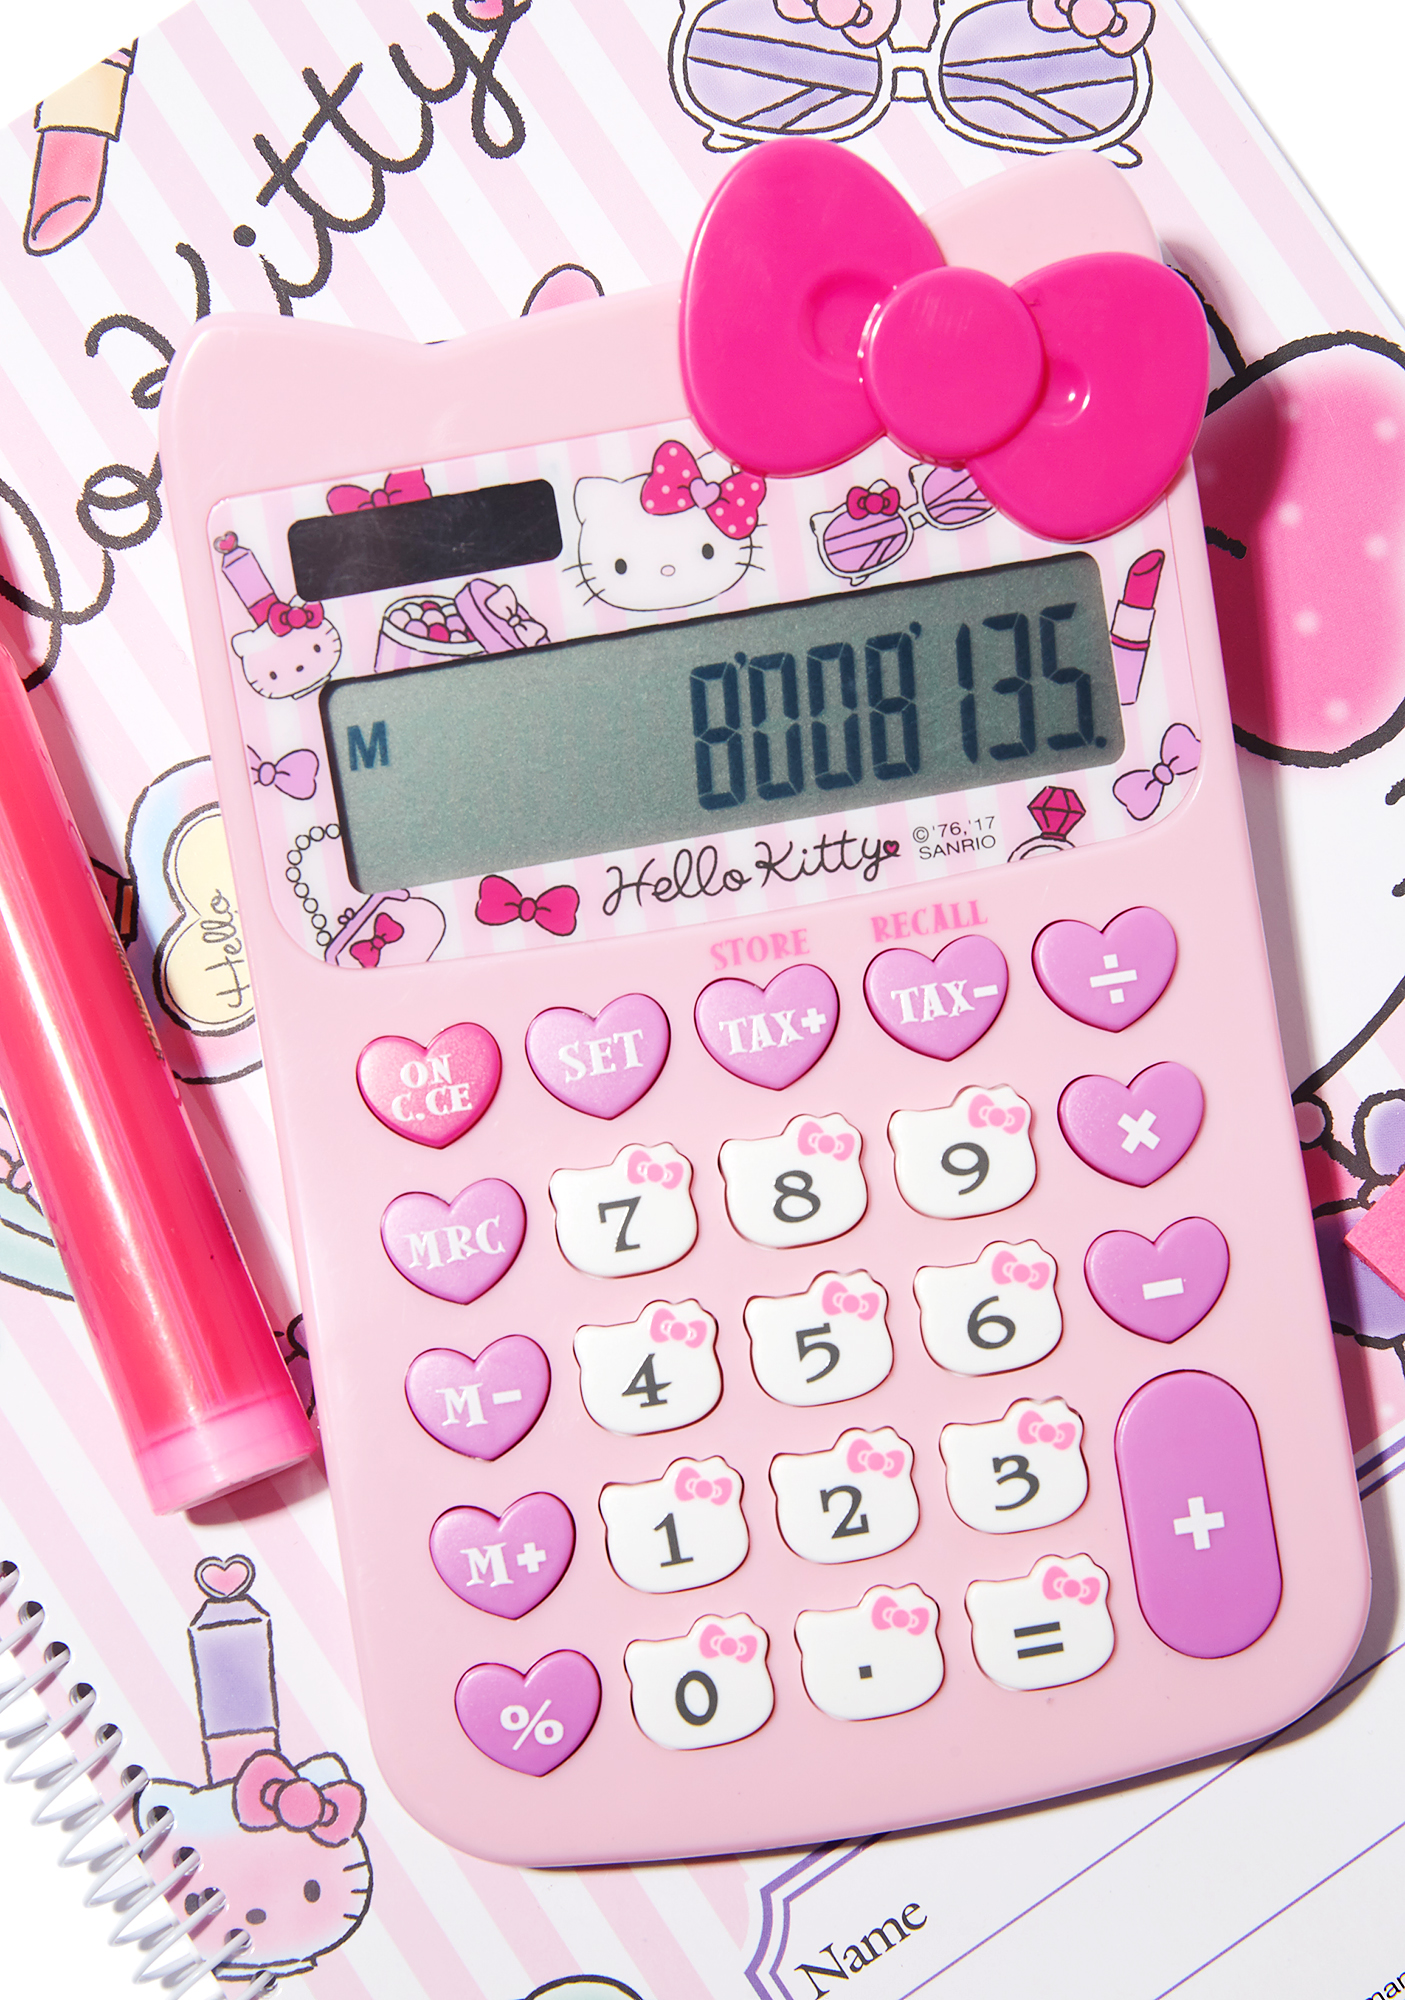 Sanrio HK Calculator